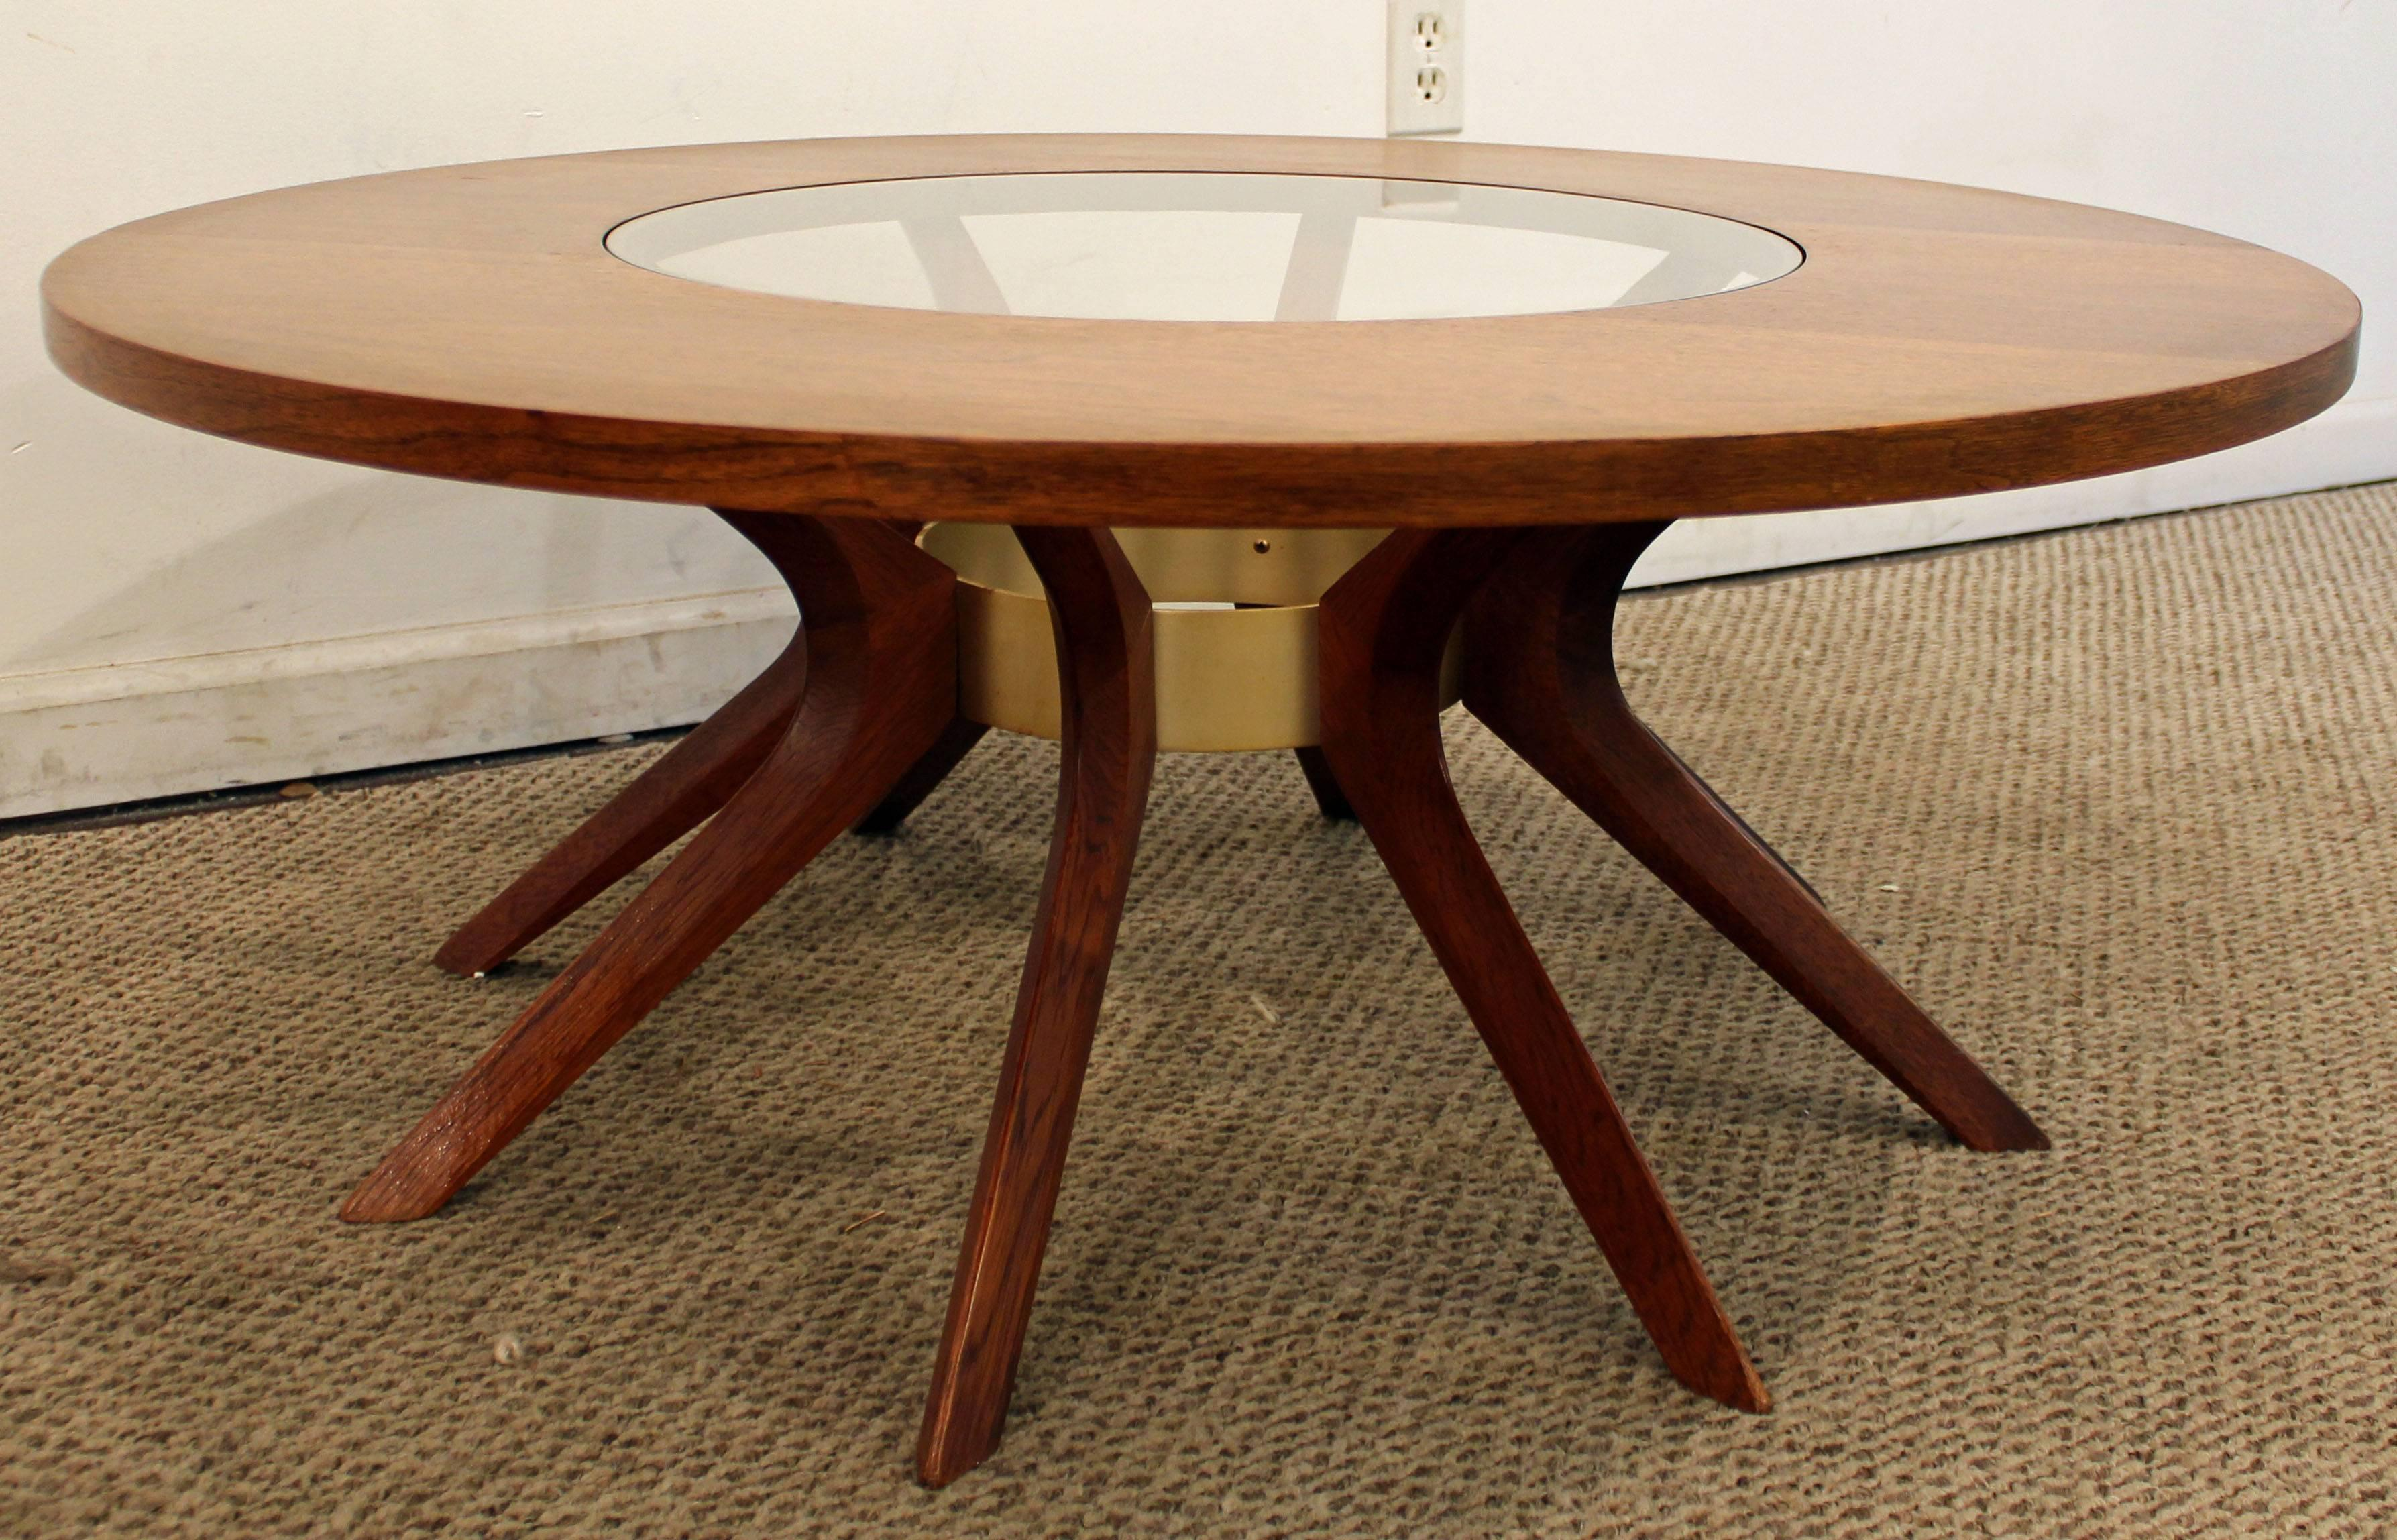 This Piece Was Made By Broyhill Brasilia. It Has A Walnut Base With A  Removable